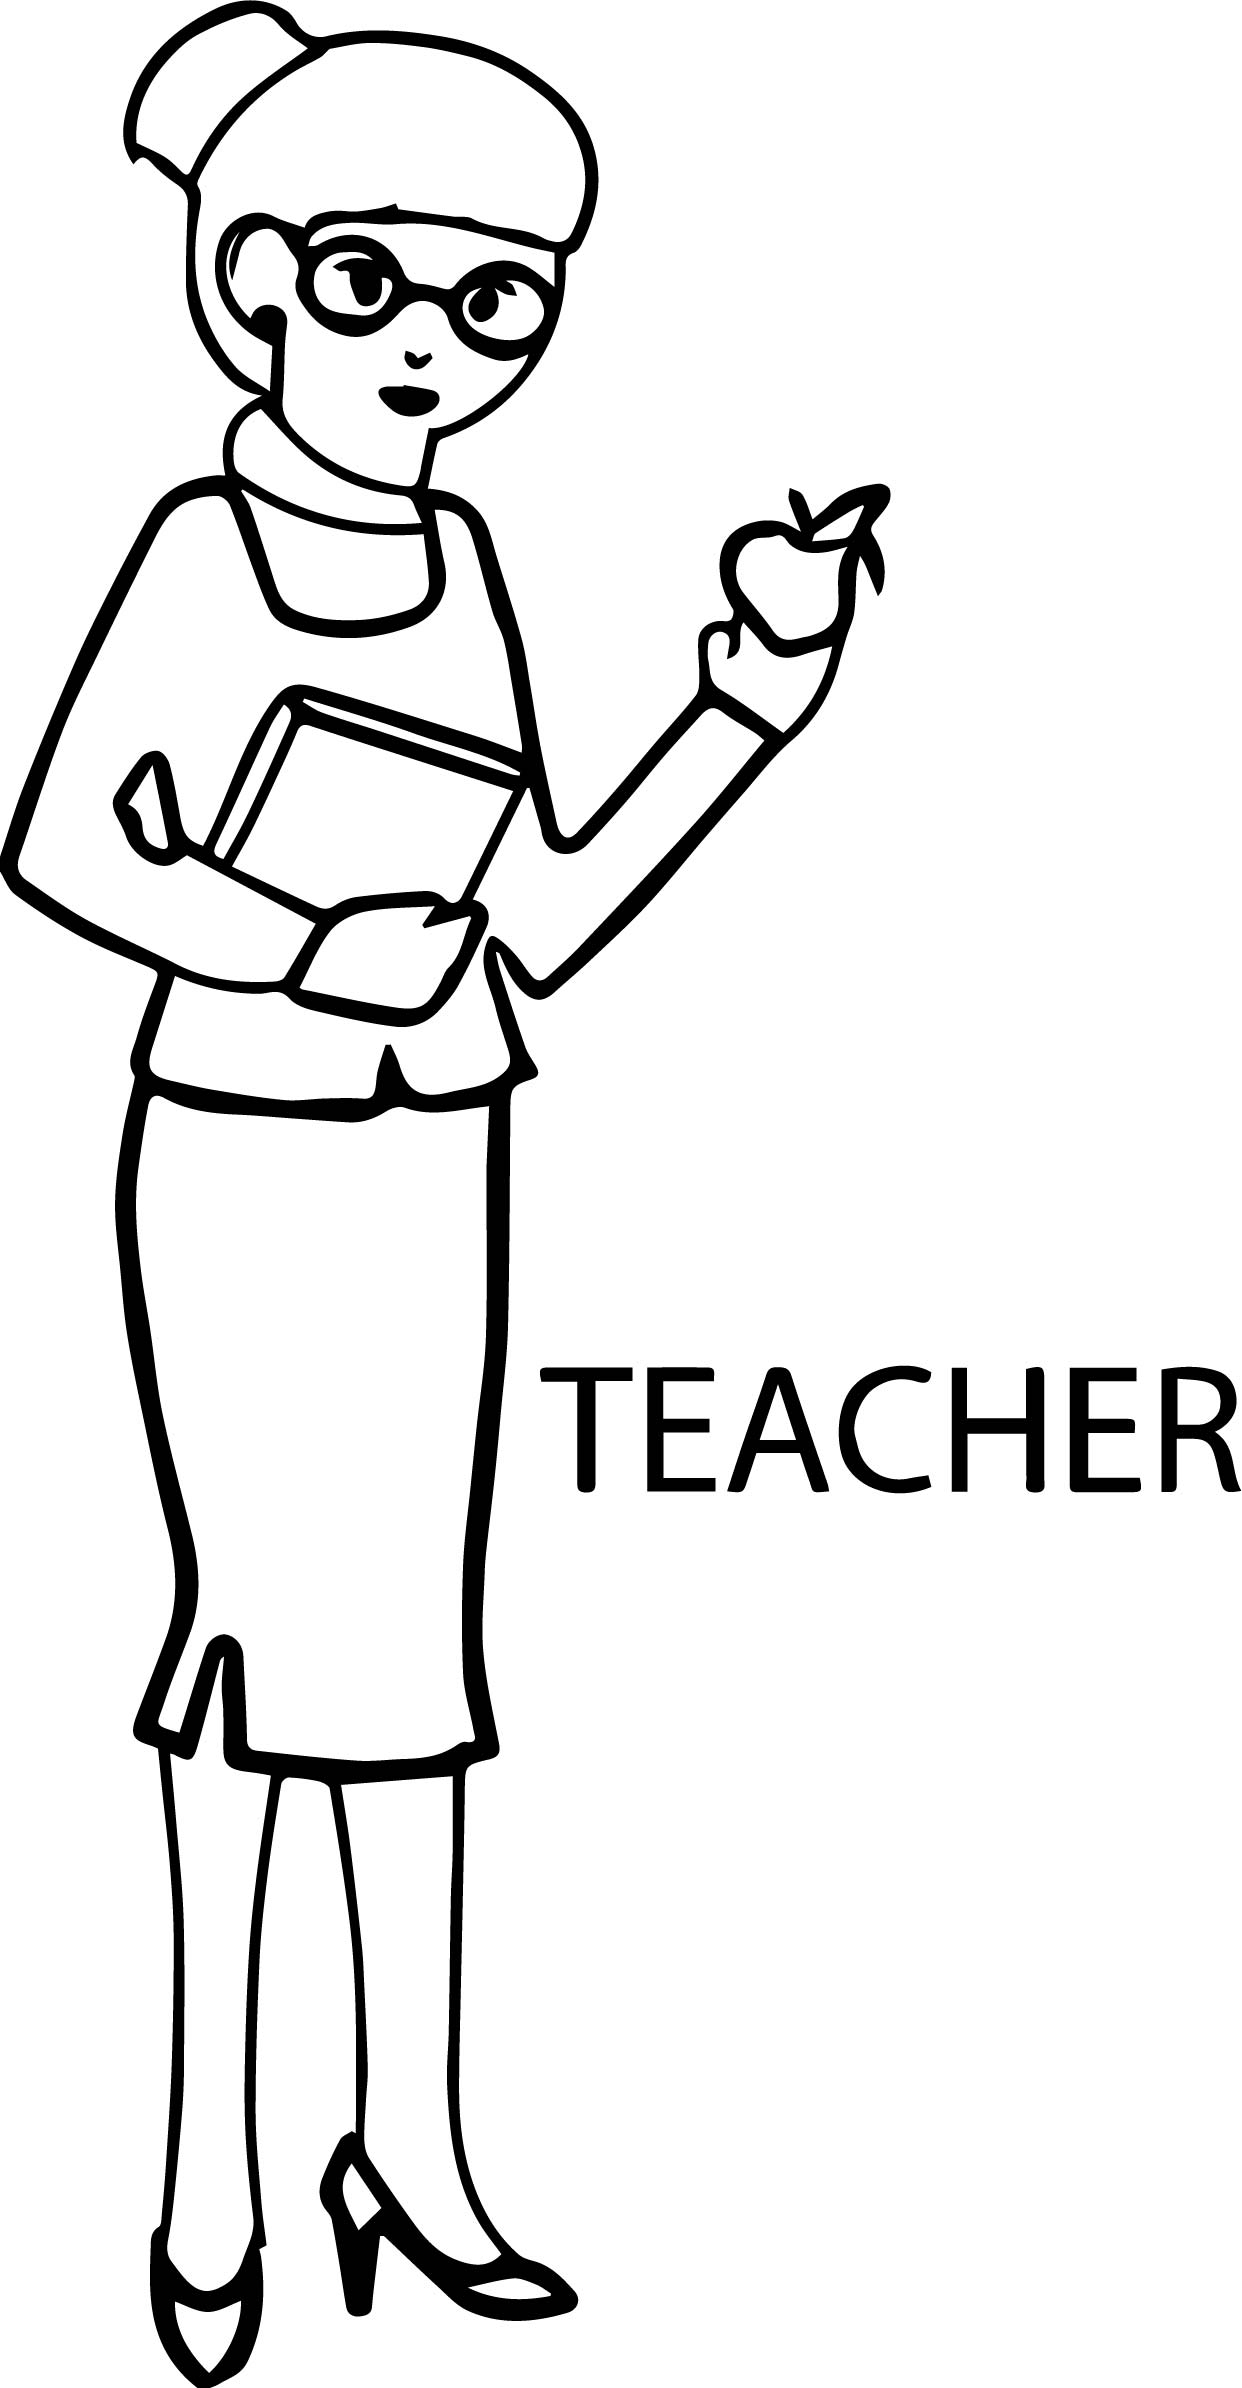 coloring pages of teachers - photo#32